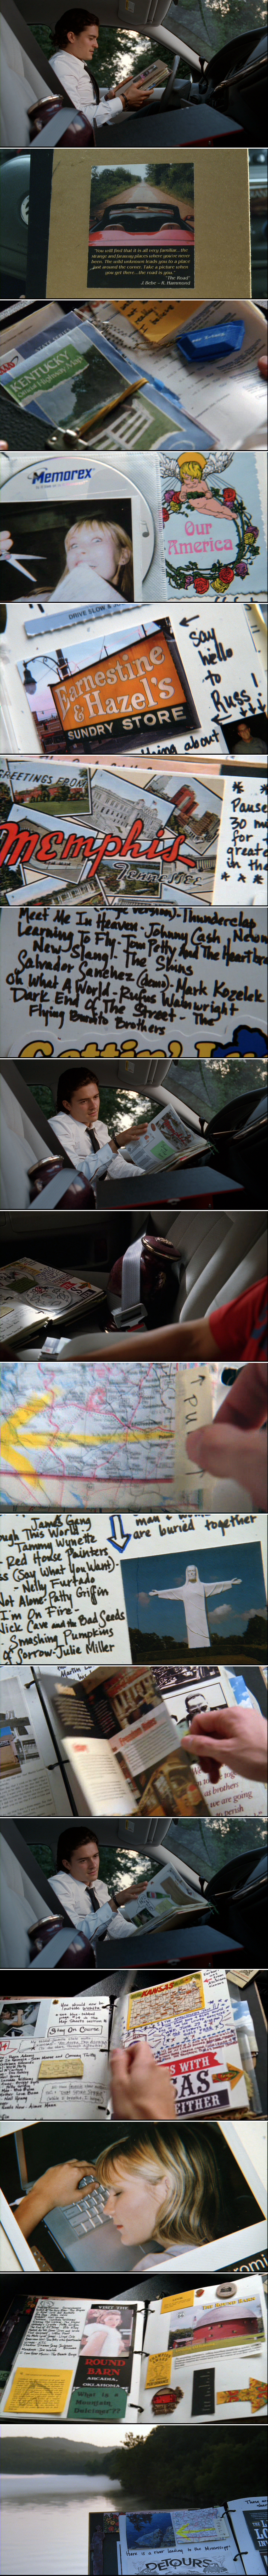 Best DIY travel guide, from the movie Elizabethtown.